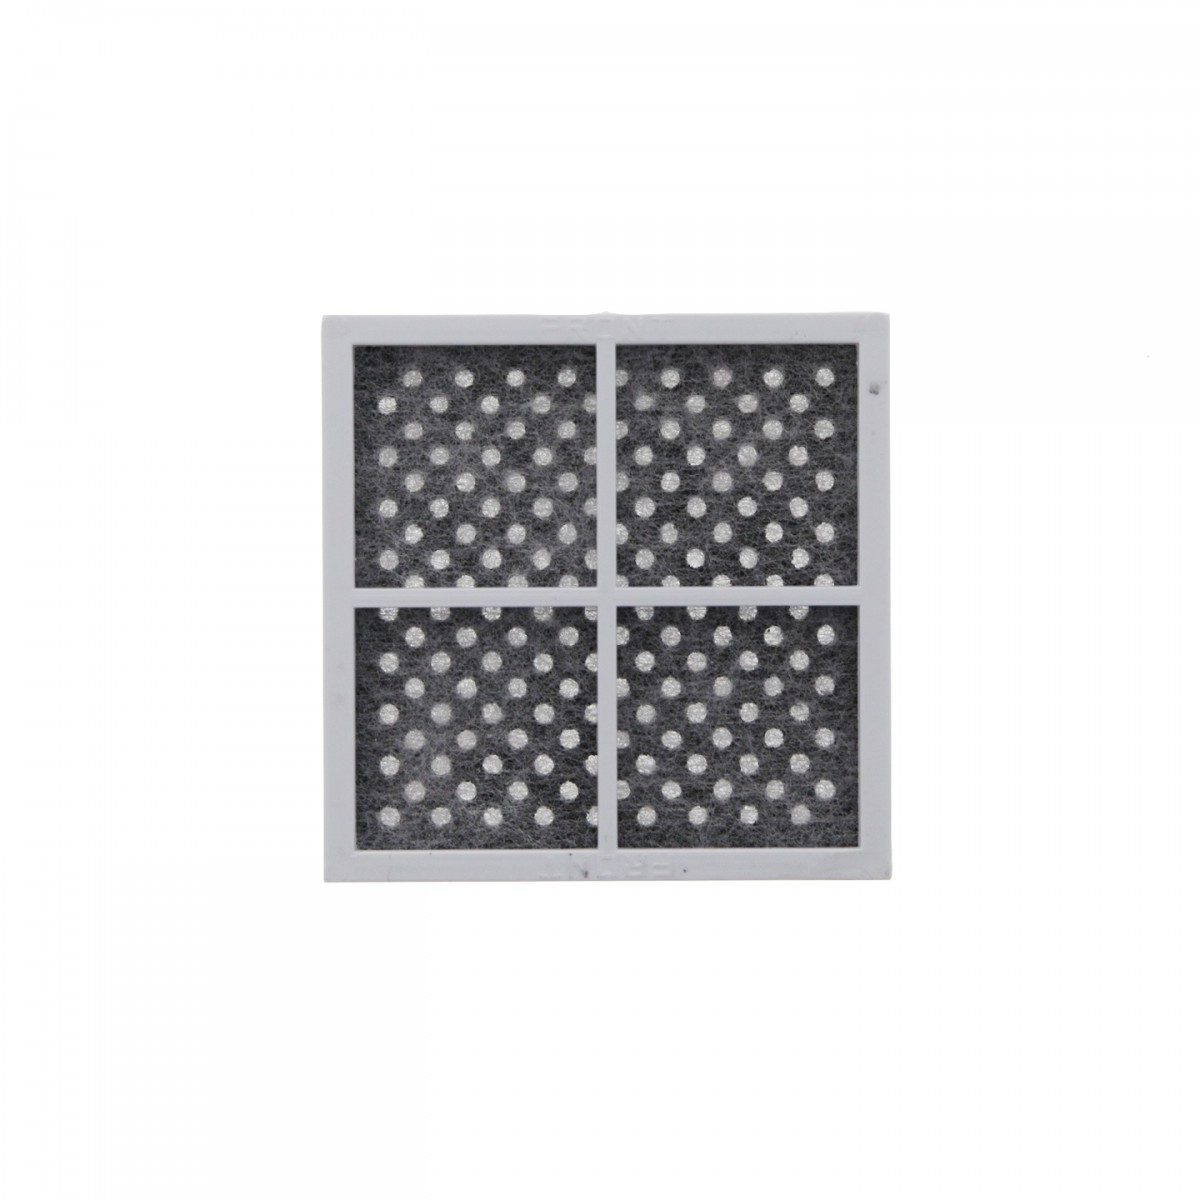 Lt120f Fresh Air Replacement Filter By Lg Fridgefilters Com